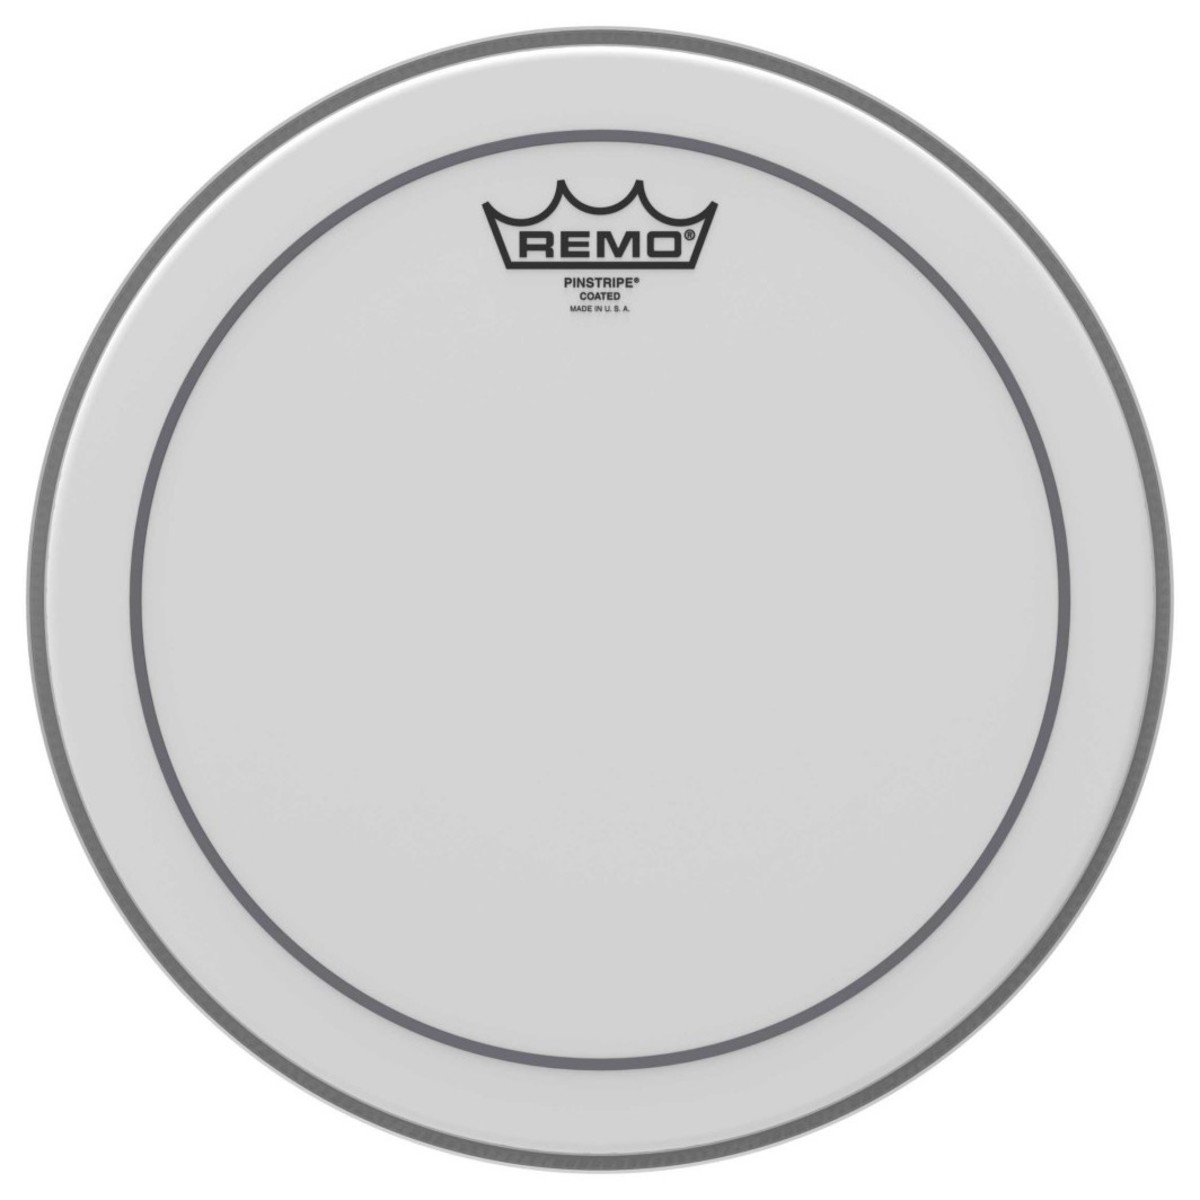 Remo Pinstripe Coated 22 Bass Drum Head